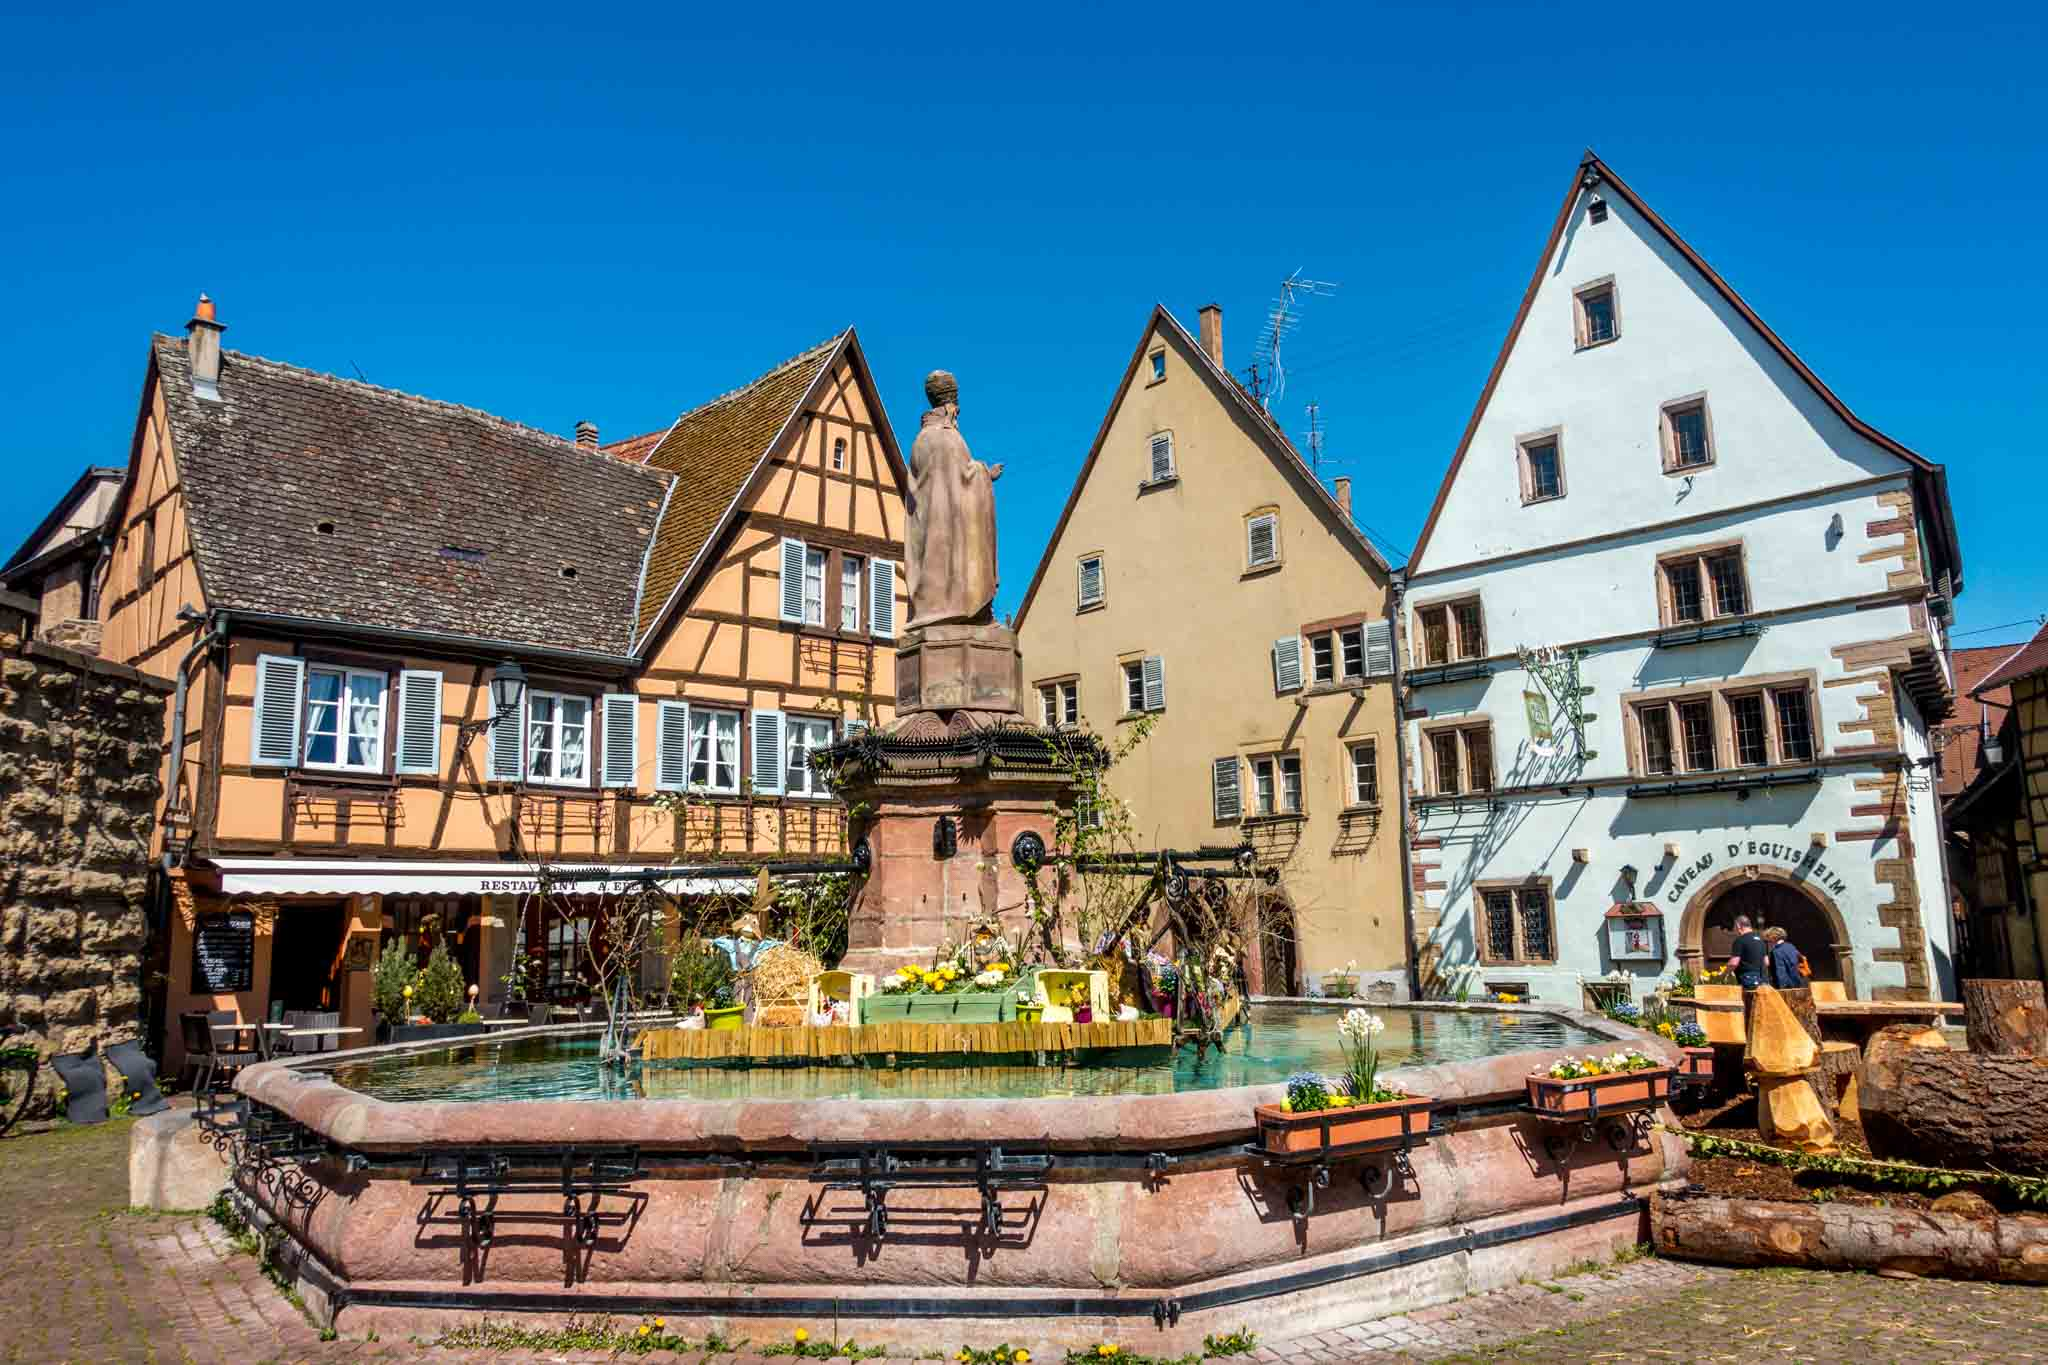 Beautiful Eguisheim is one of the best small towns in France, and Saint Leon Square is the heart of the town